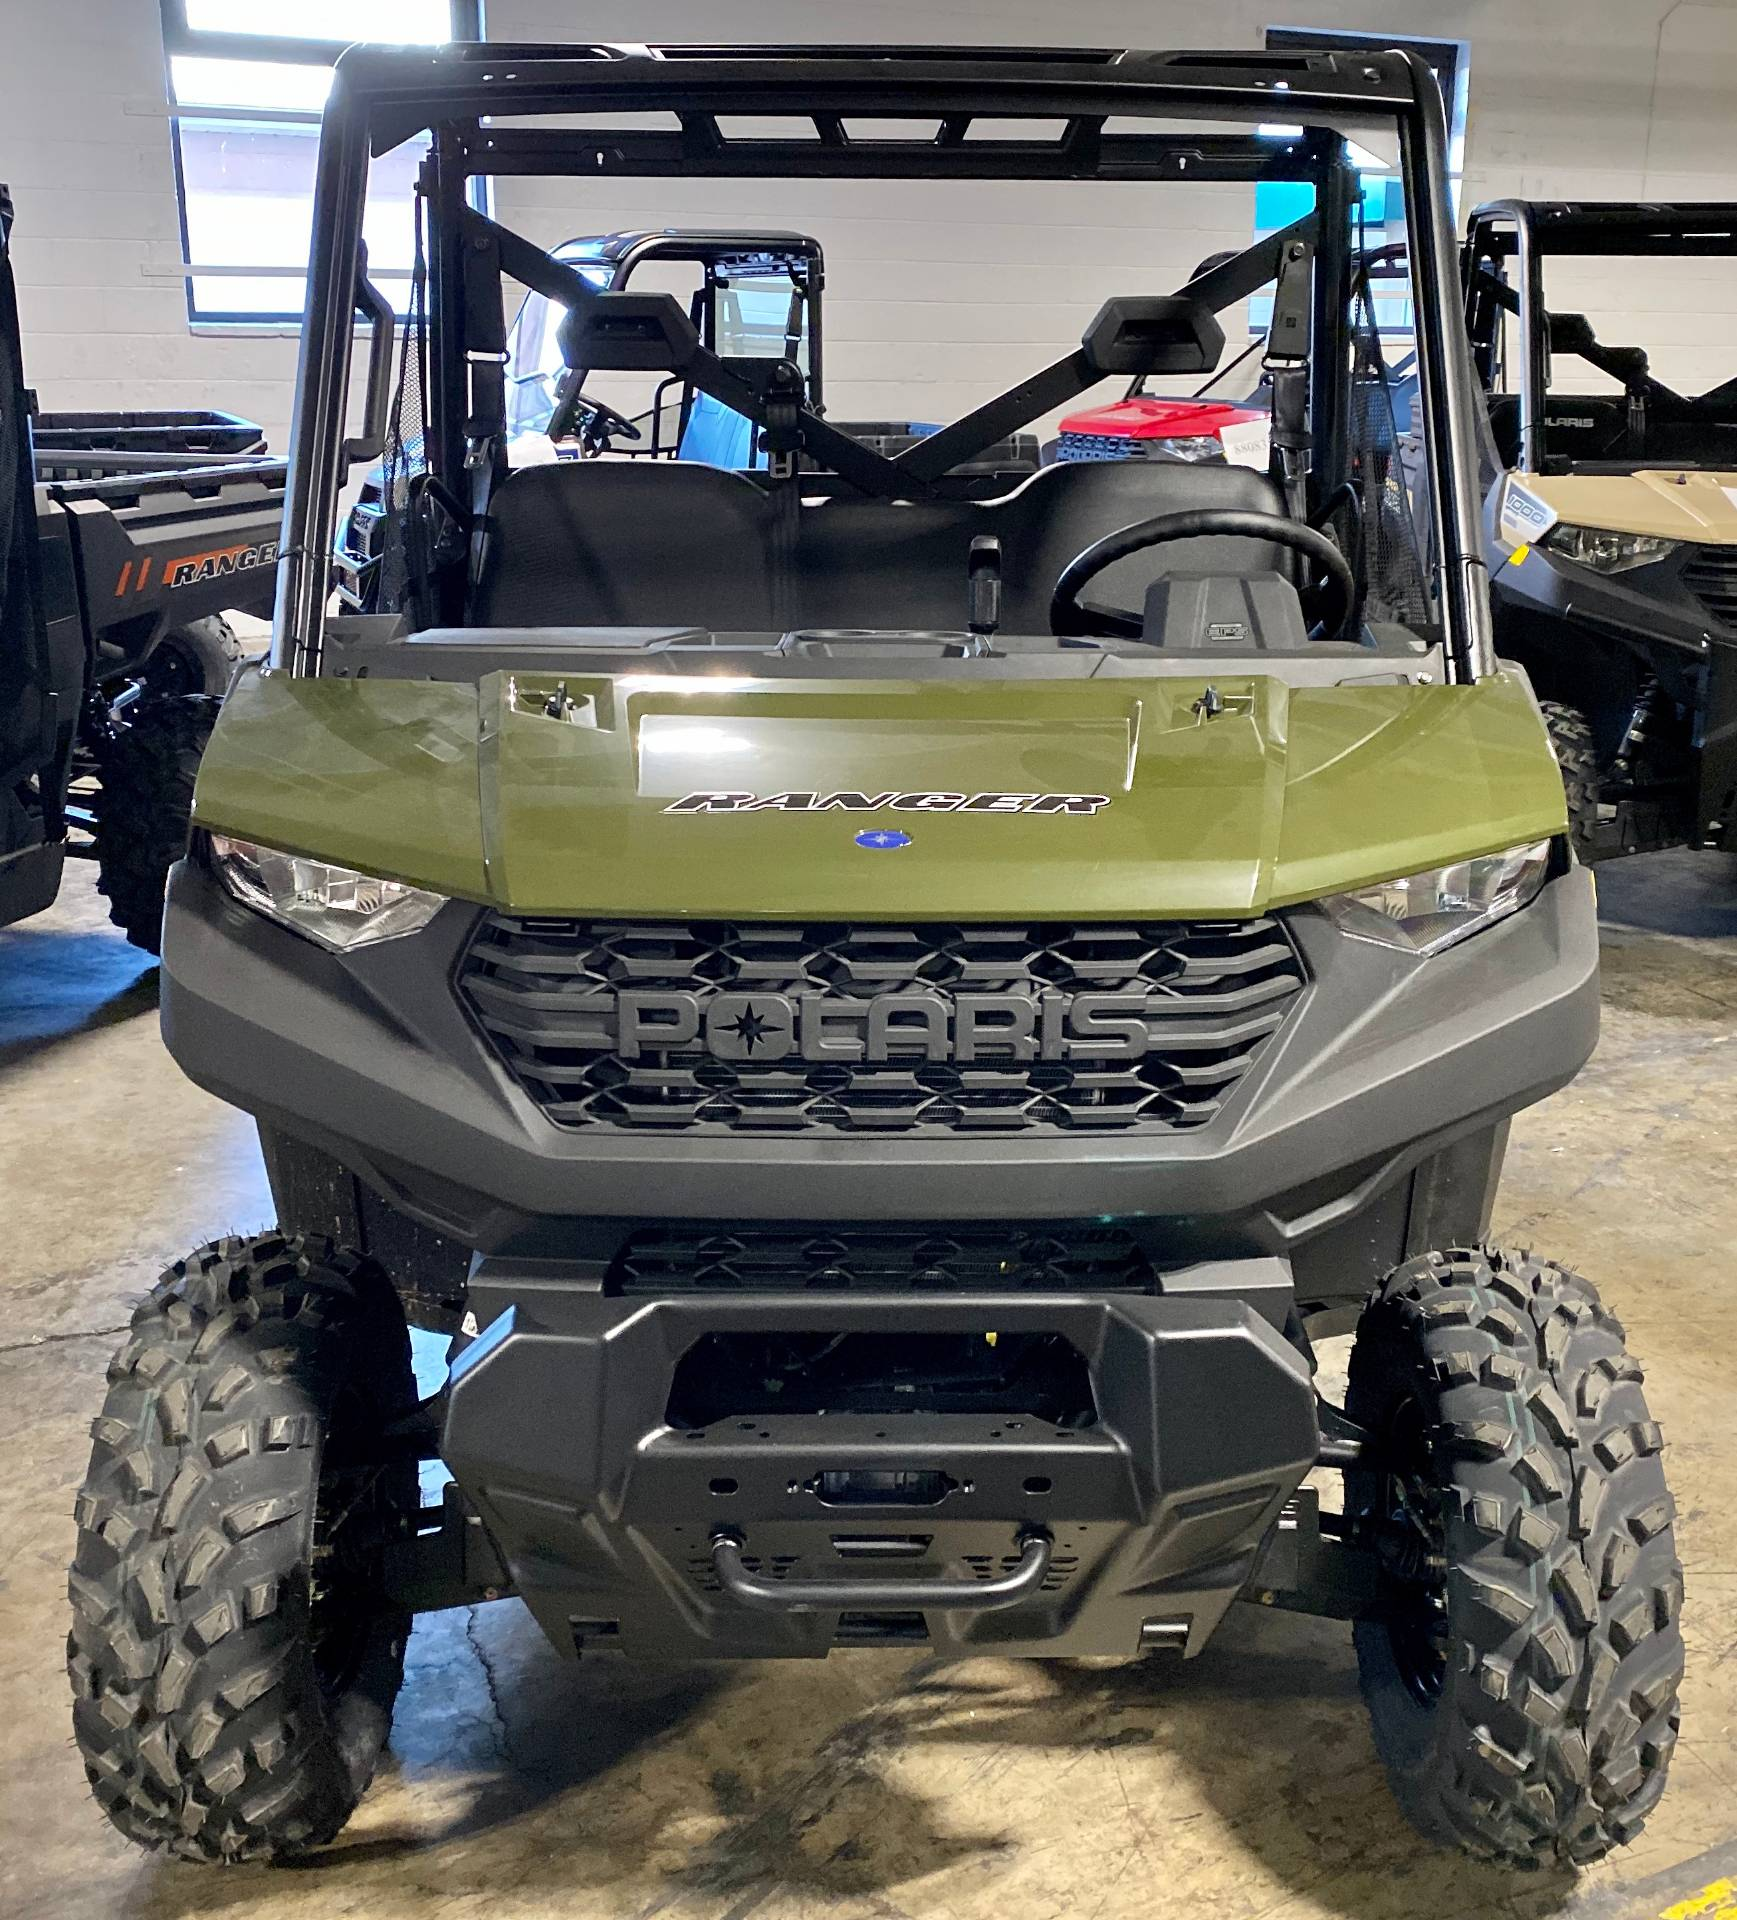 2020 Polaris Ranger 1000 EPS in Statesville, North Carolina - Photo 2